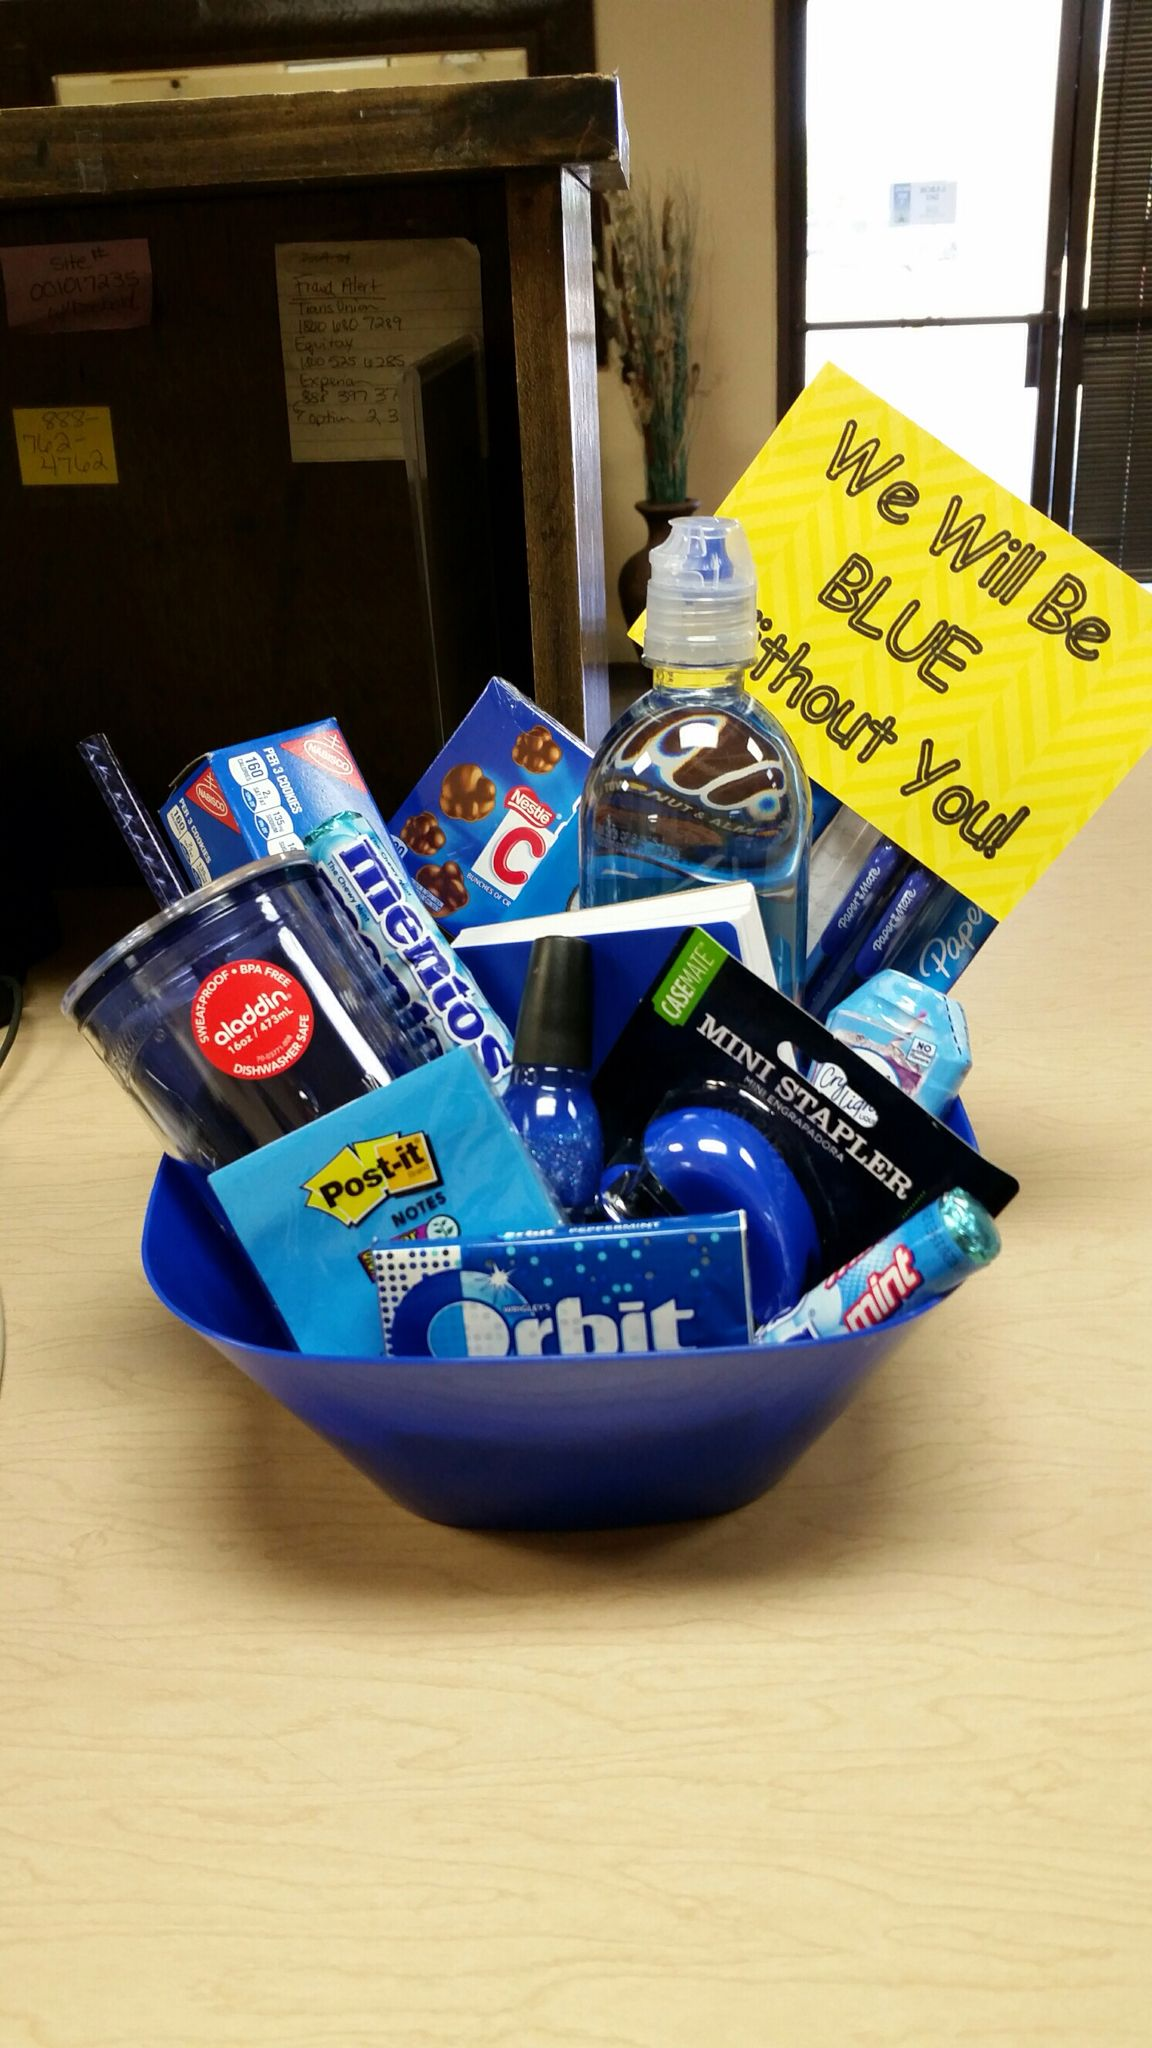 Farewell Ideas For Coworkers - Make your gifts special make your life special blue bouquet going away gift for co worker who is leaving